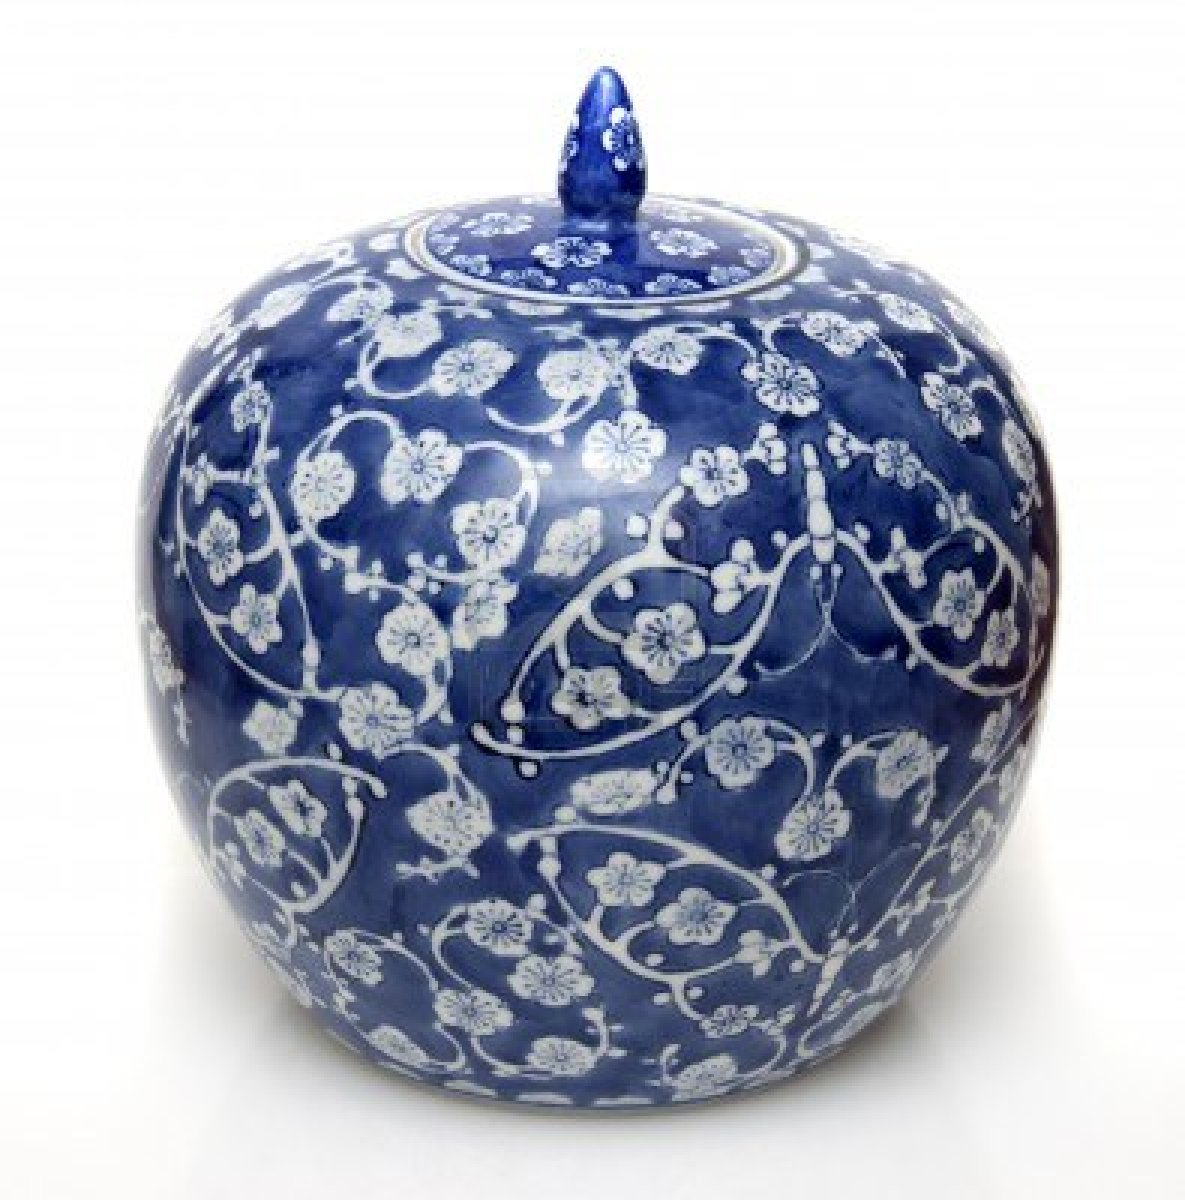 china rhyming blog archive orwell and chinese ginger jars. Black Bedroom Furniture Sets. Home Design Ideas